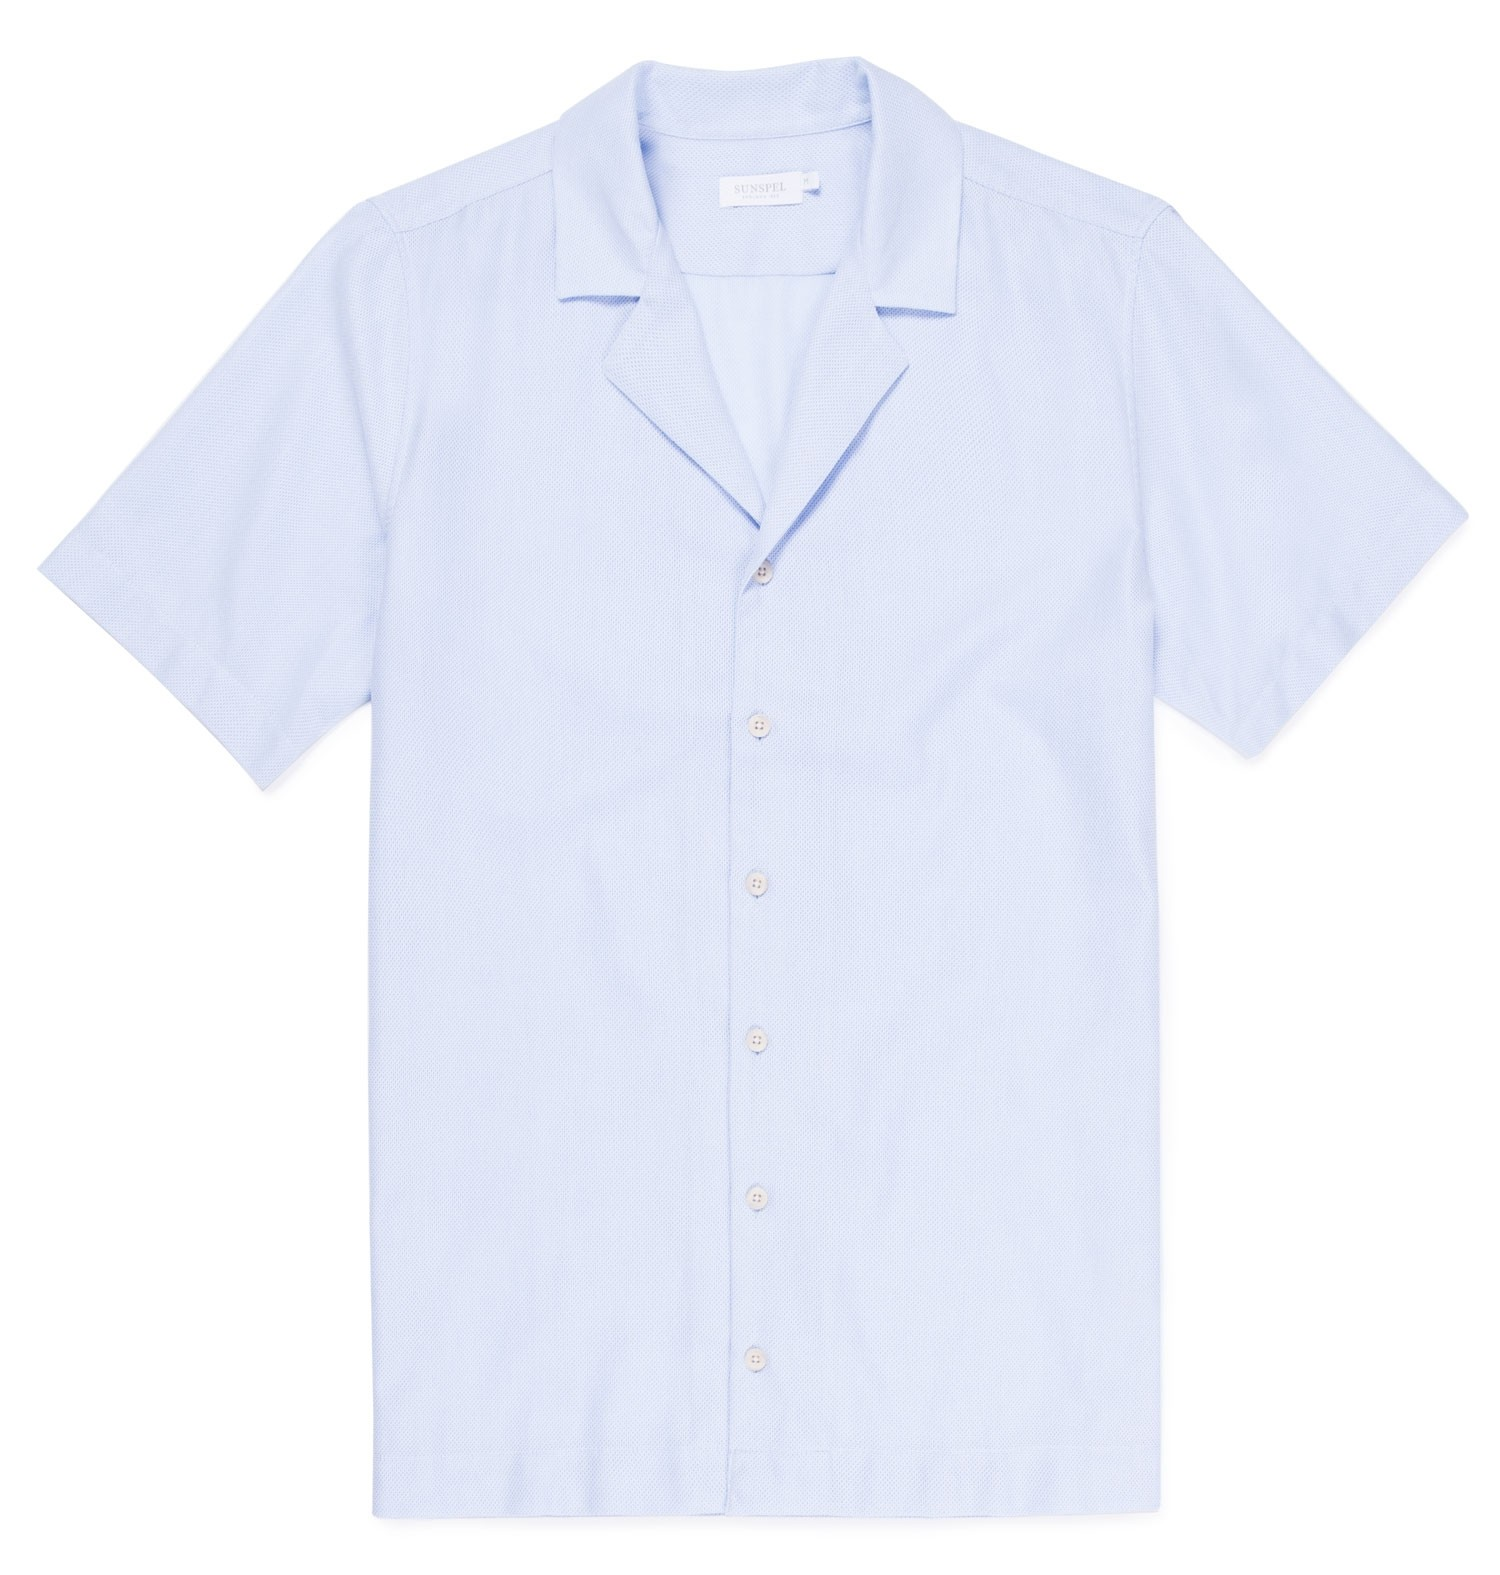 Sunspel Light Blue Men's Cotton Mesh Camp Collar Shirt